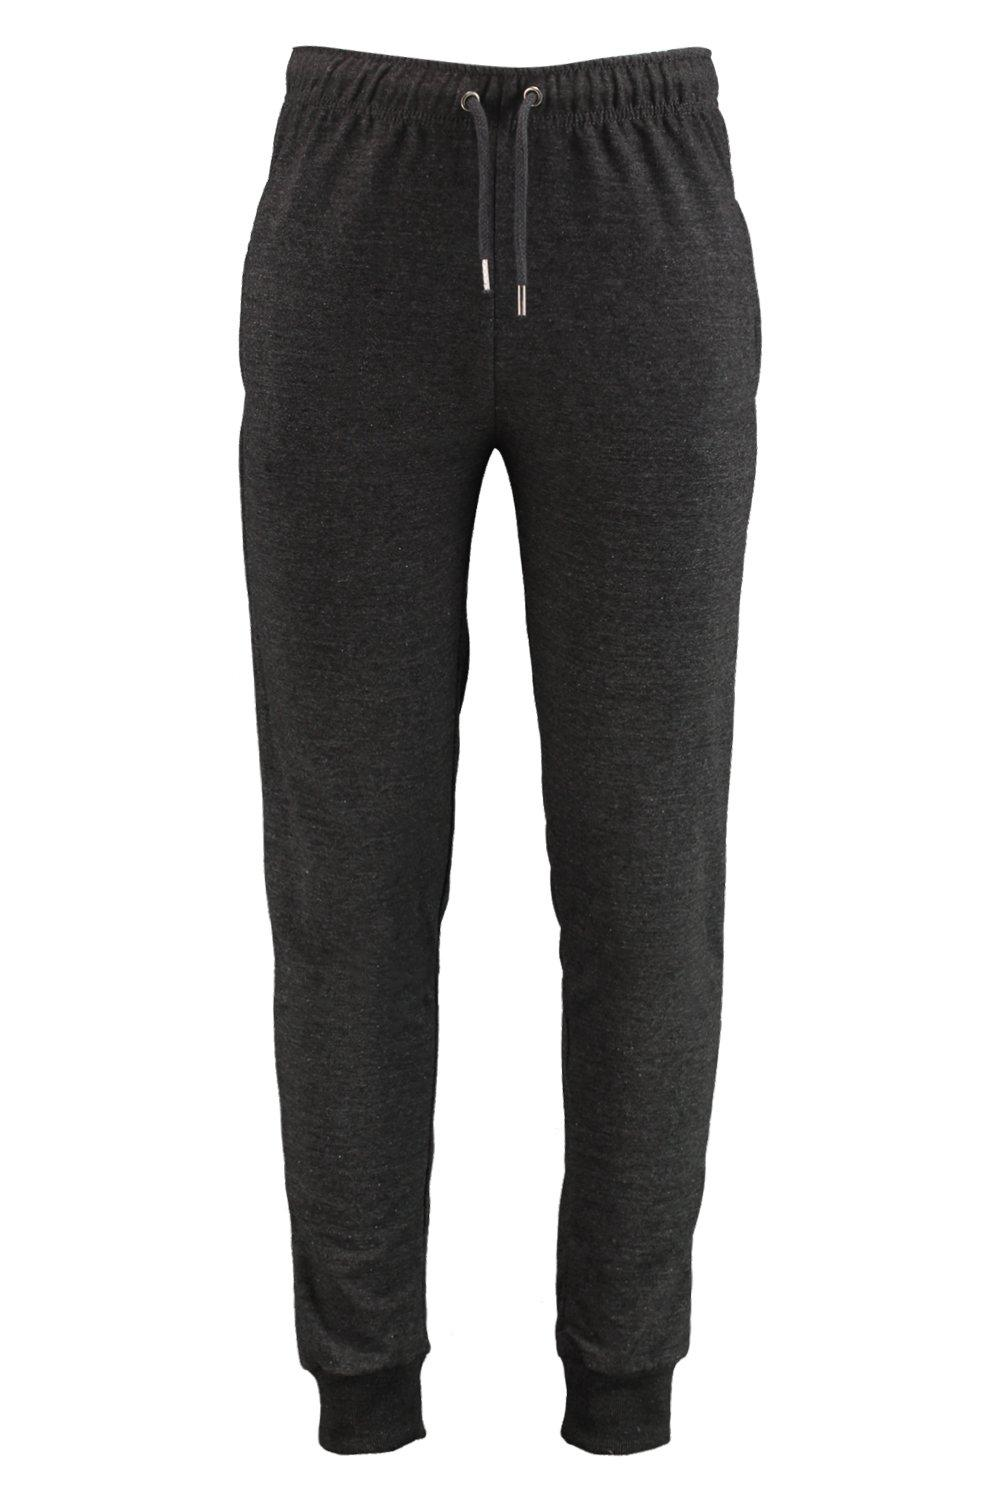 Joggers Basic Fit Fit Joggers Fit Skinny charcoal Basic Skinny charcoal Basic Skinny wq4Sp